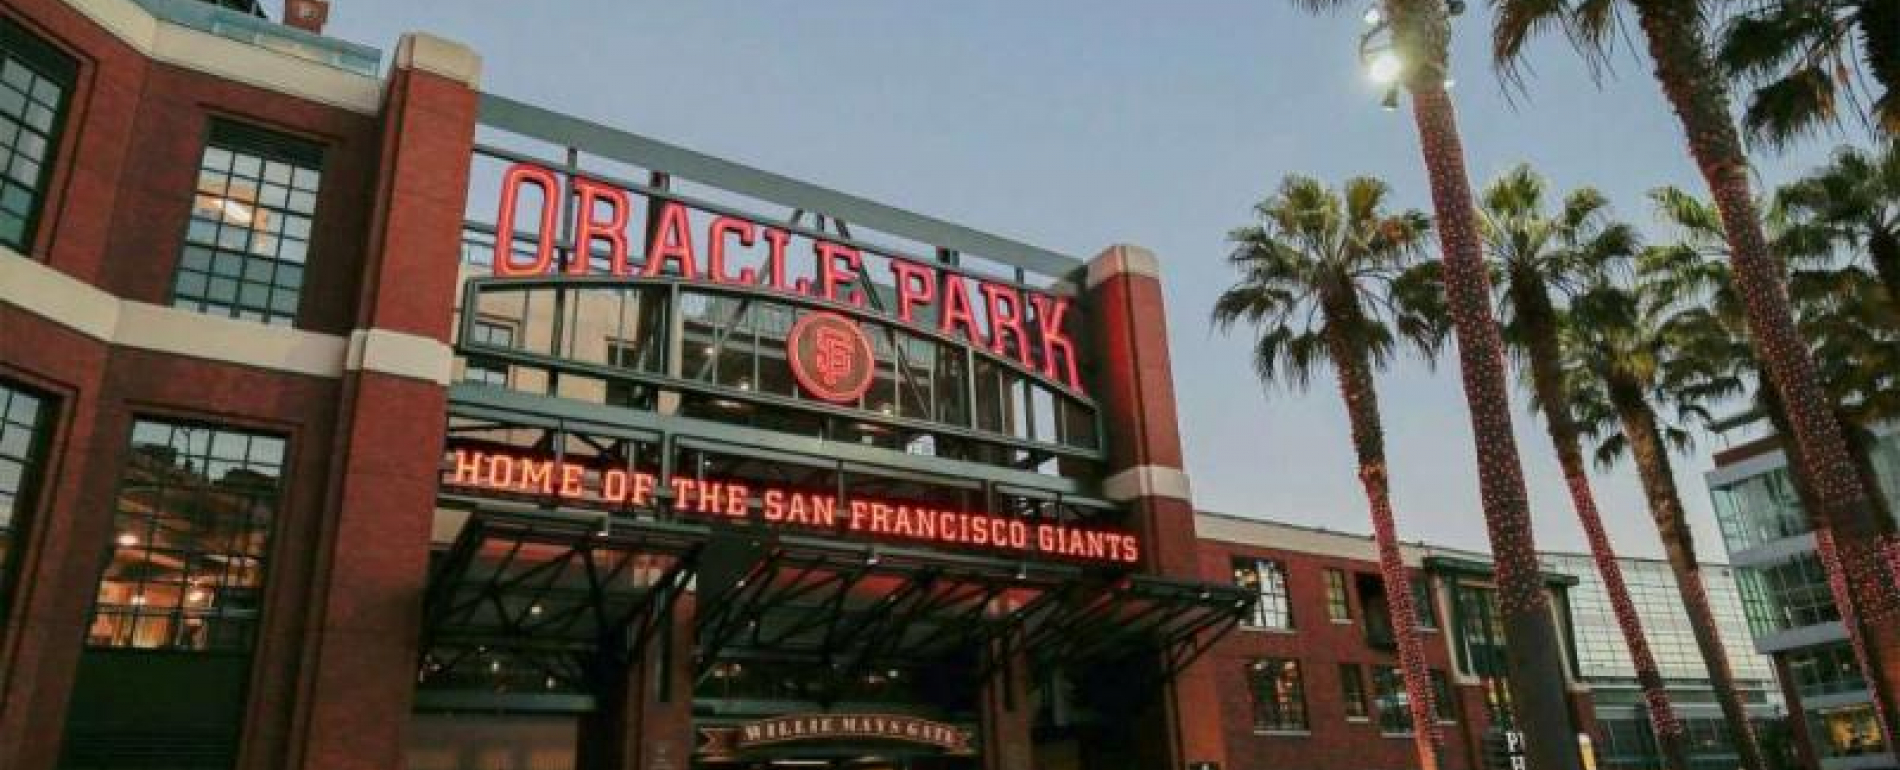 Oracle Park Entrance